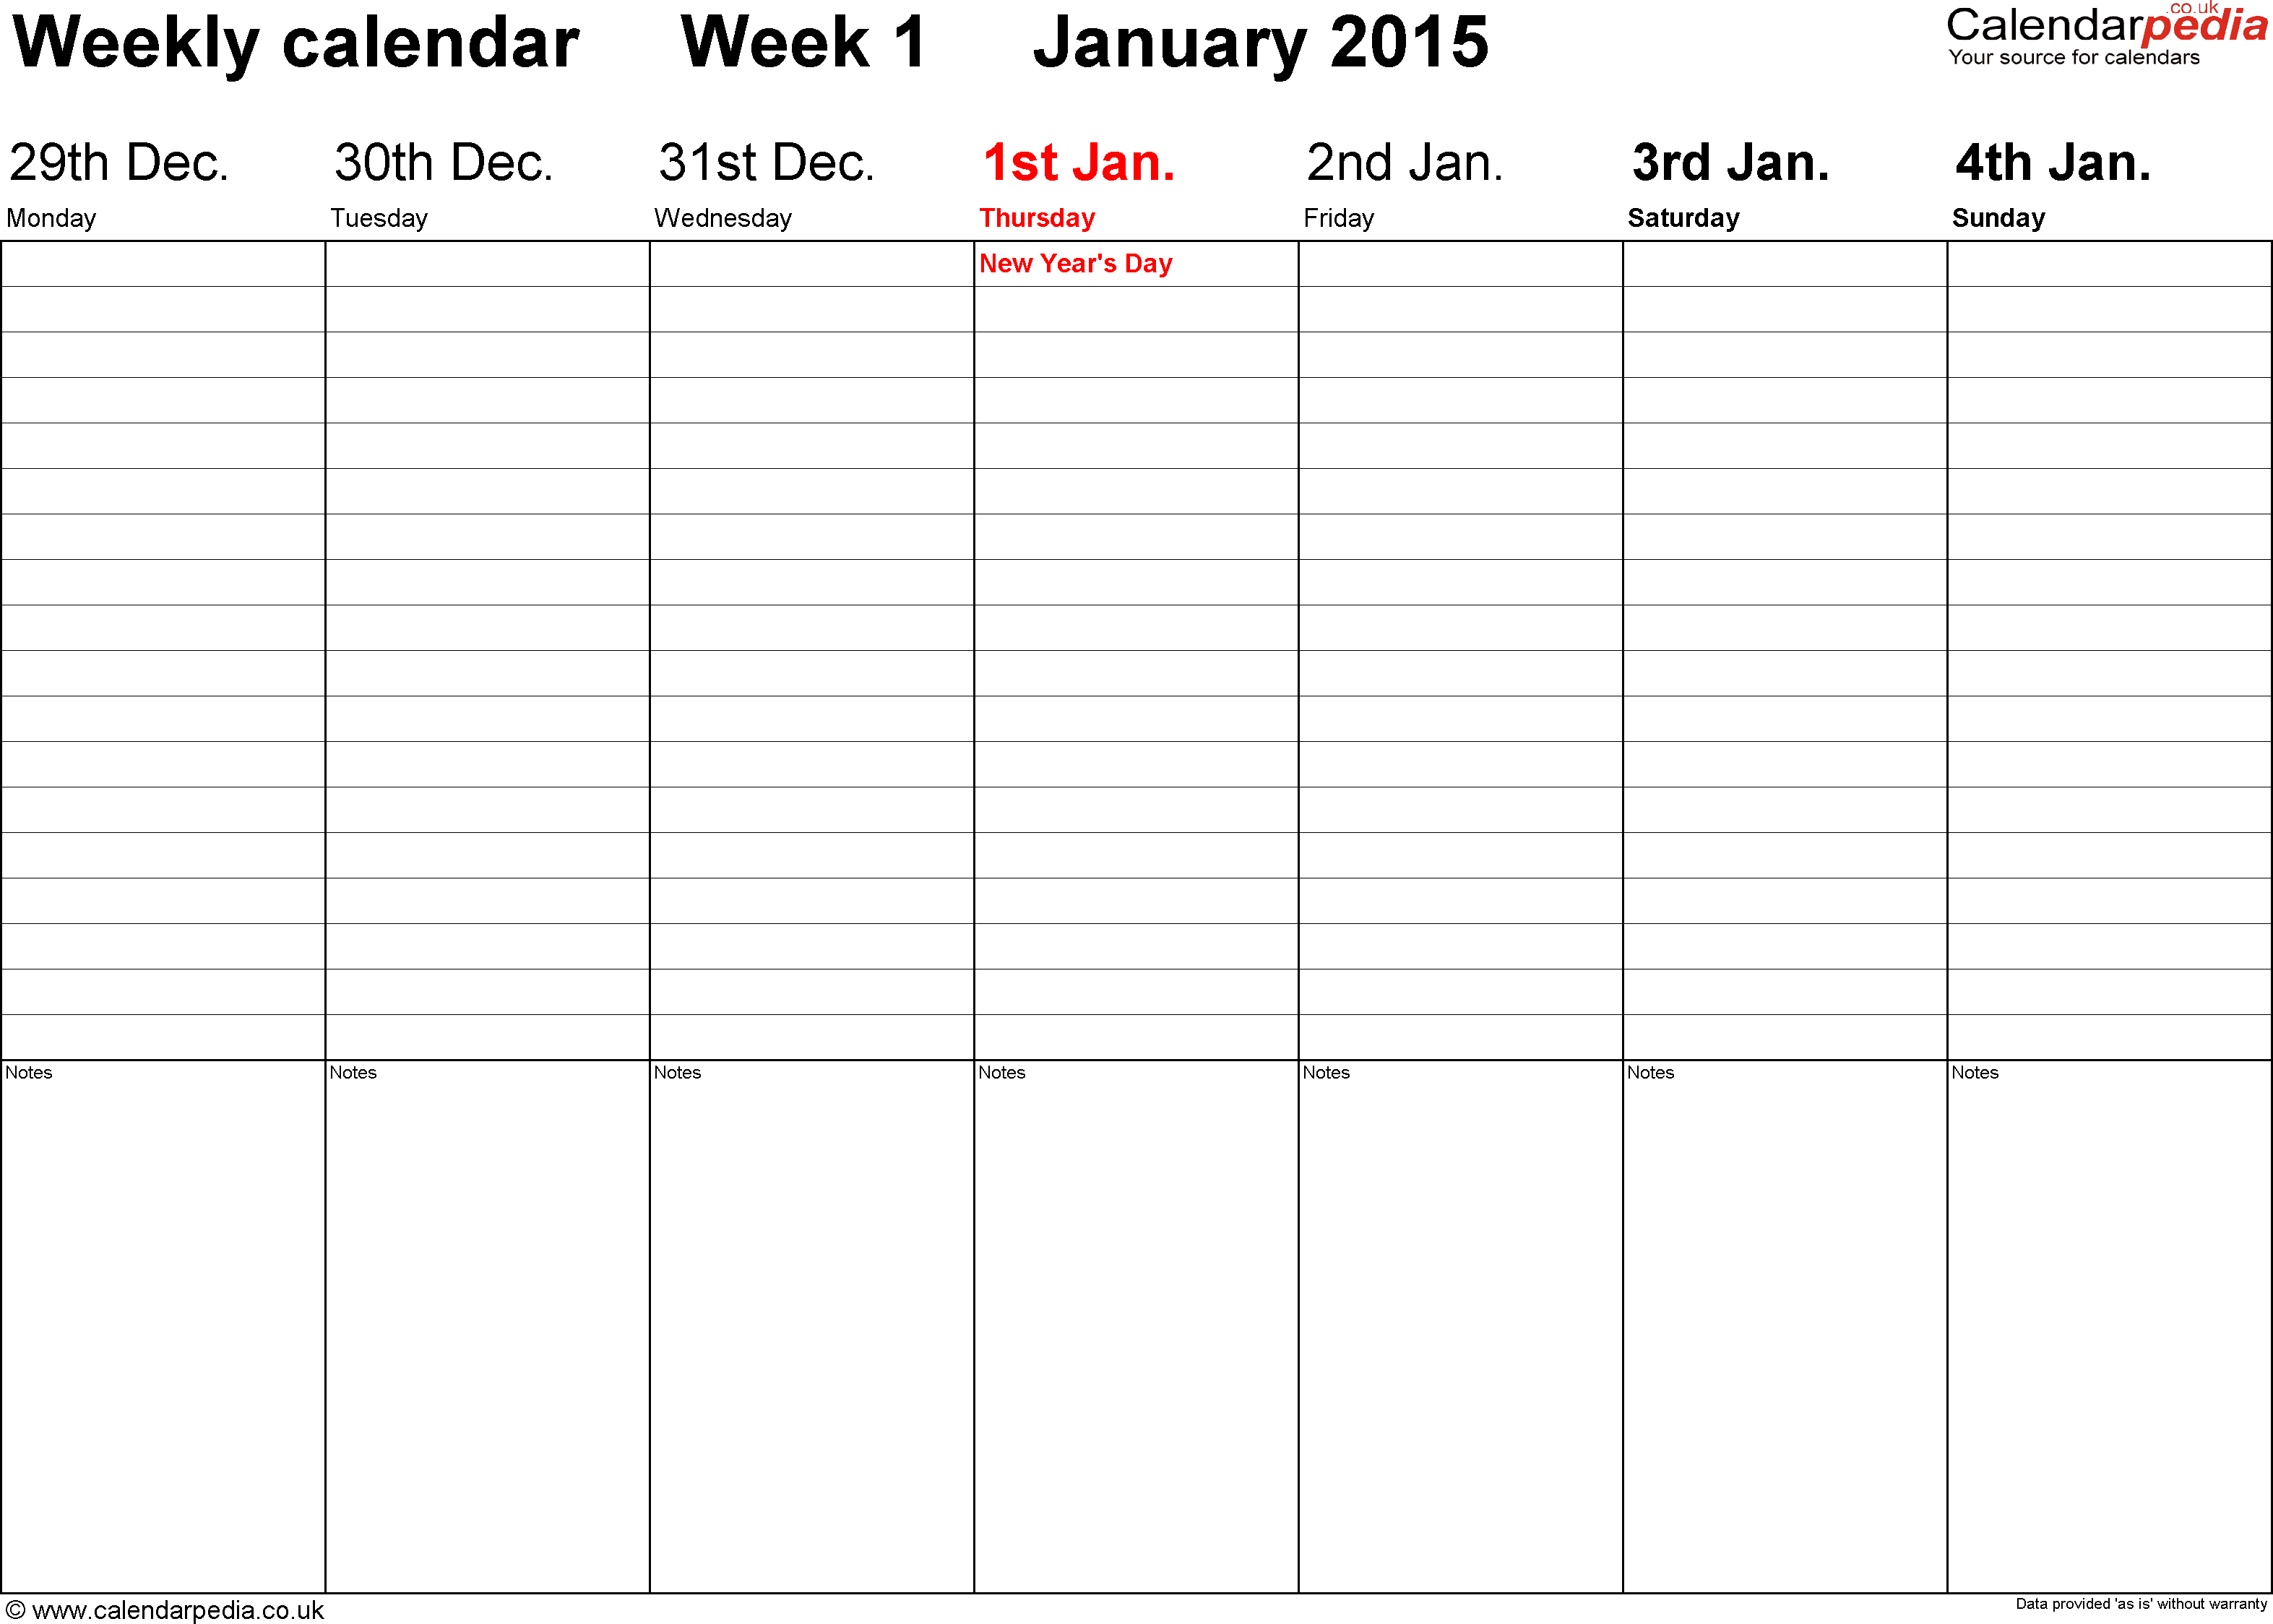 Daily Week Calendar weekly calendar 2015 uk - free printable templates for pdf